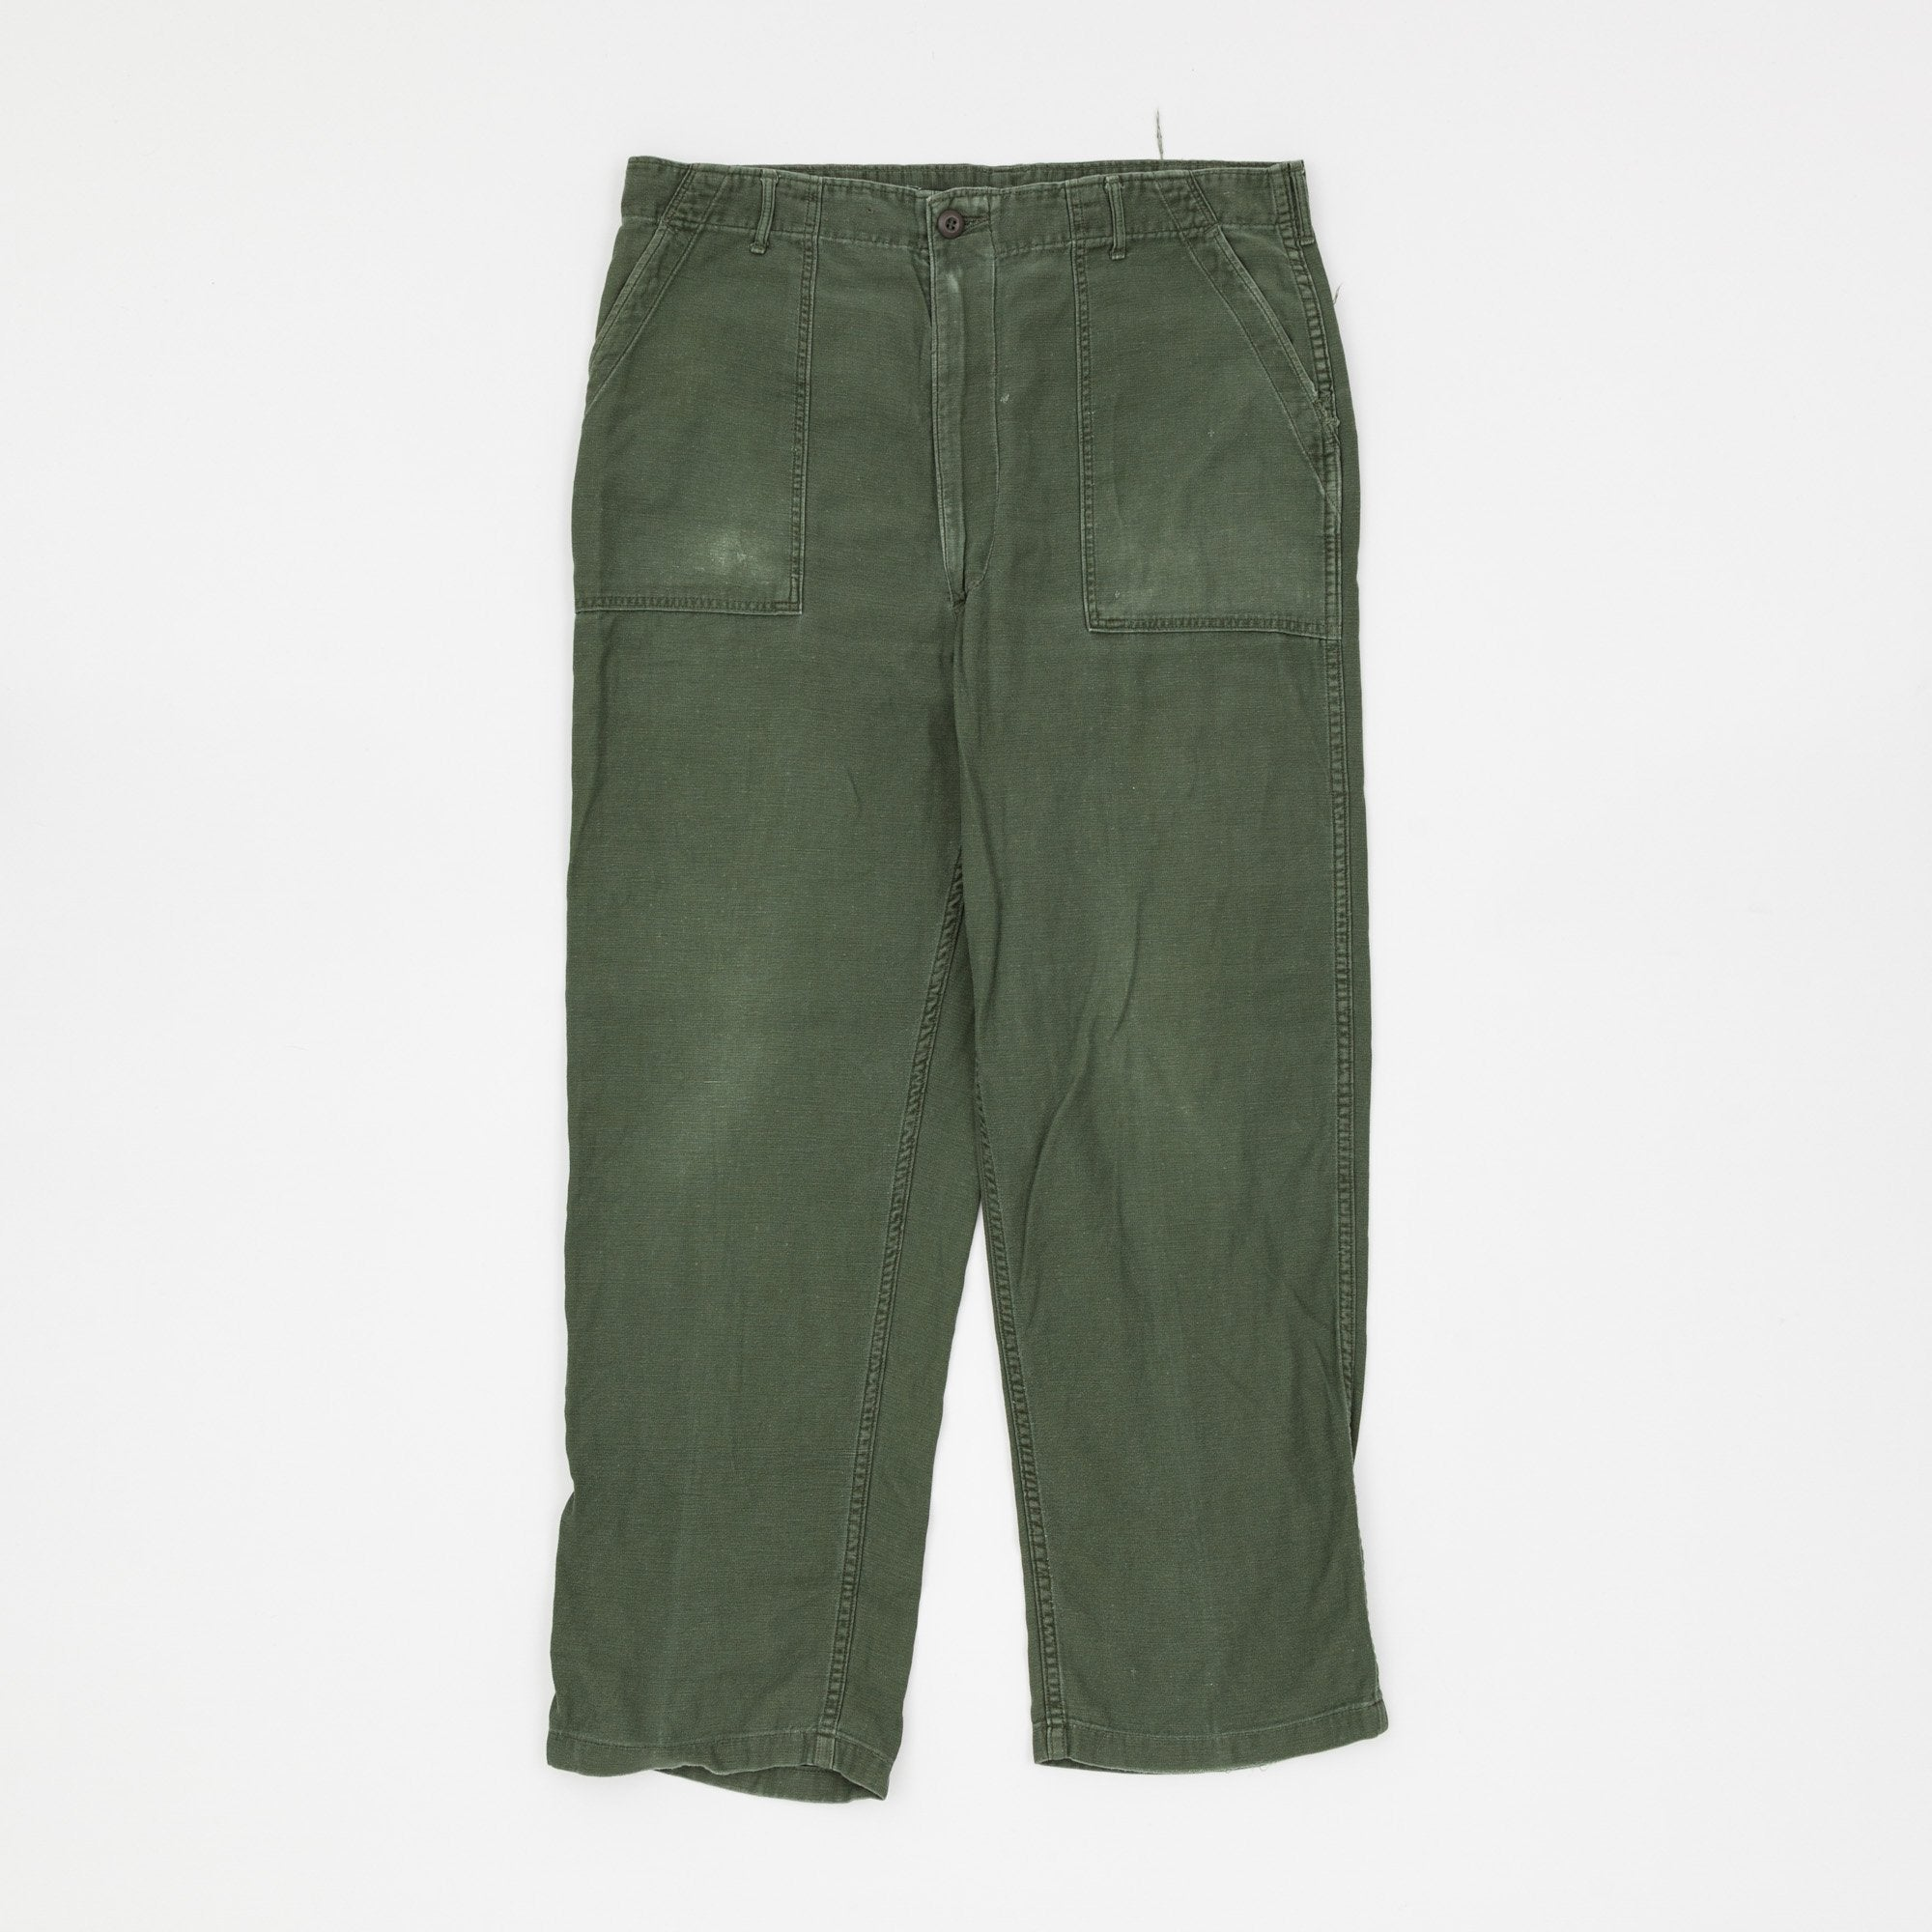 Vintage U.S Army Fatigue Trousers